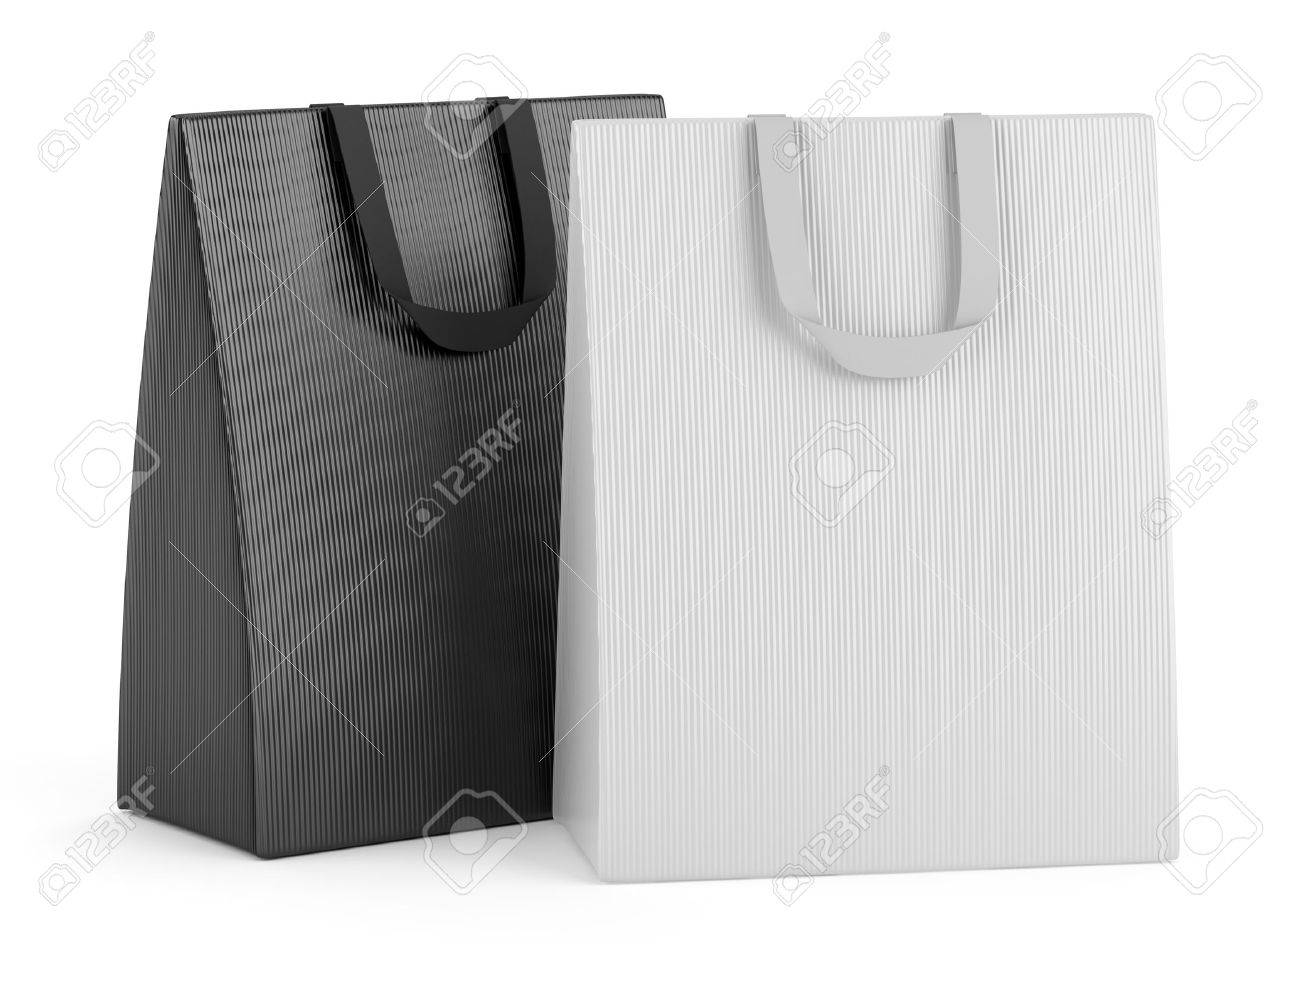 two blank shopping bags isolated on white background Stock Photo - 15934723